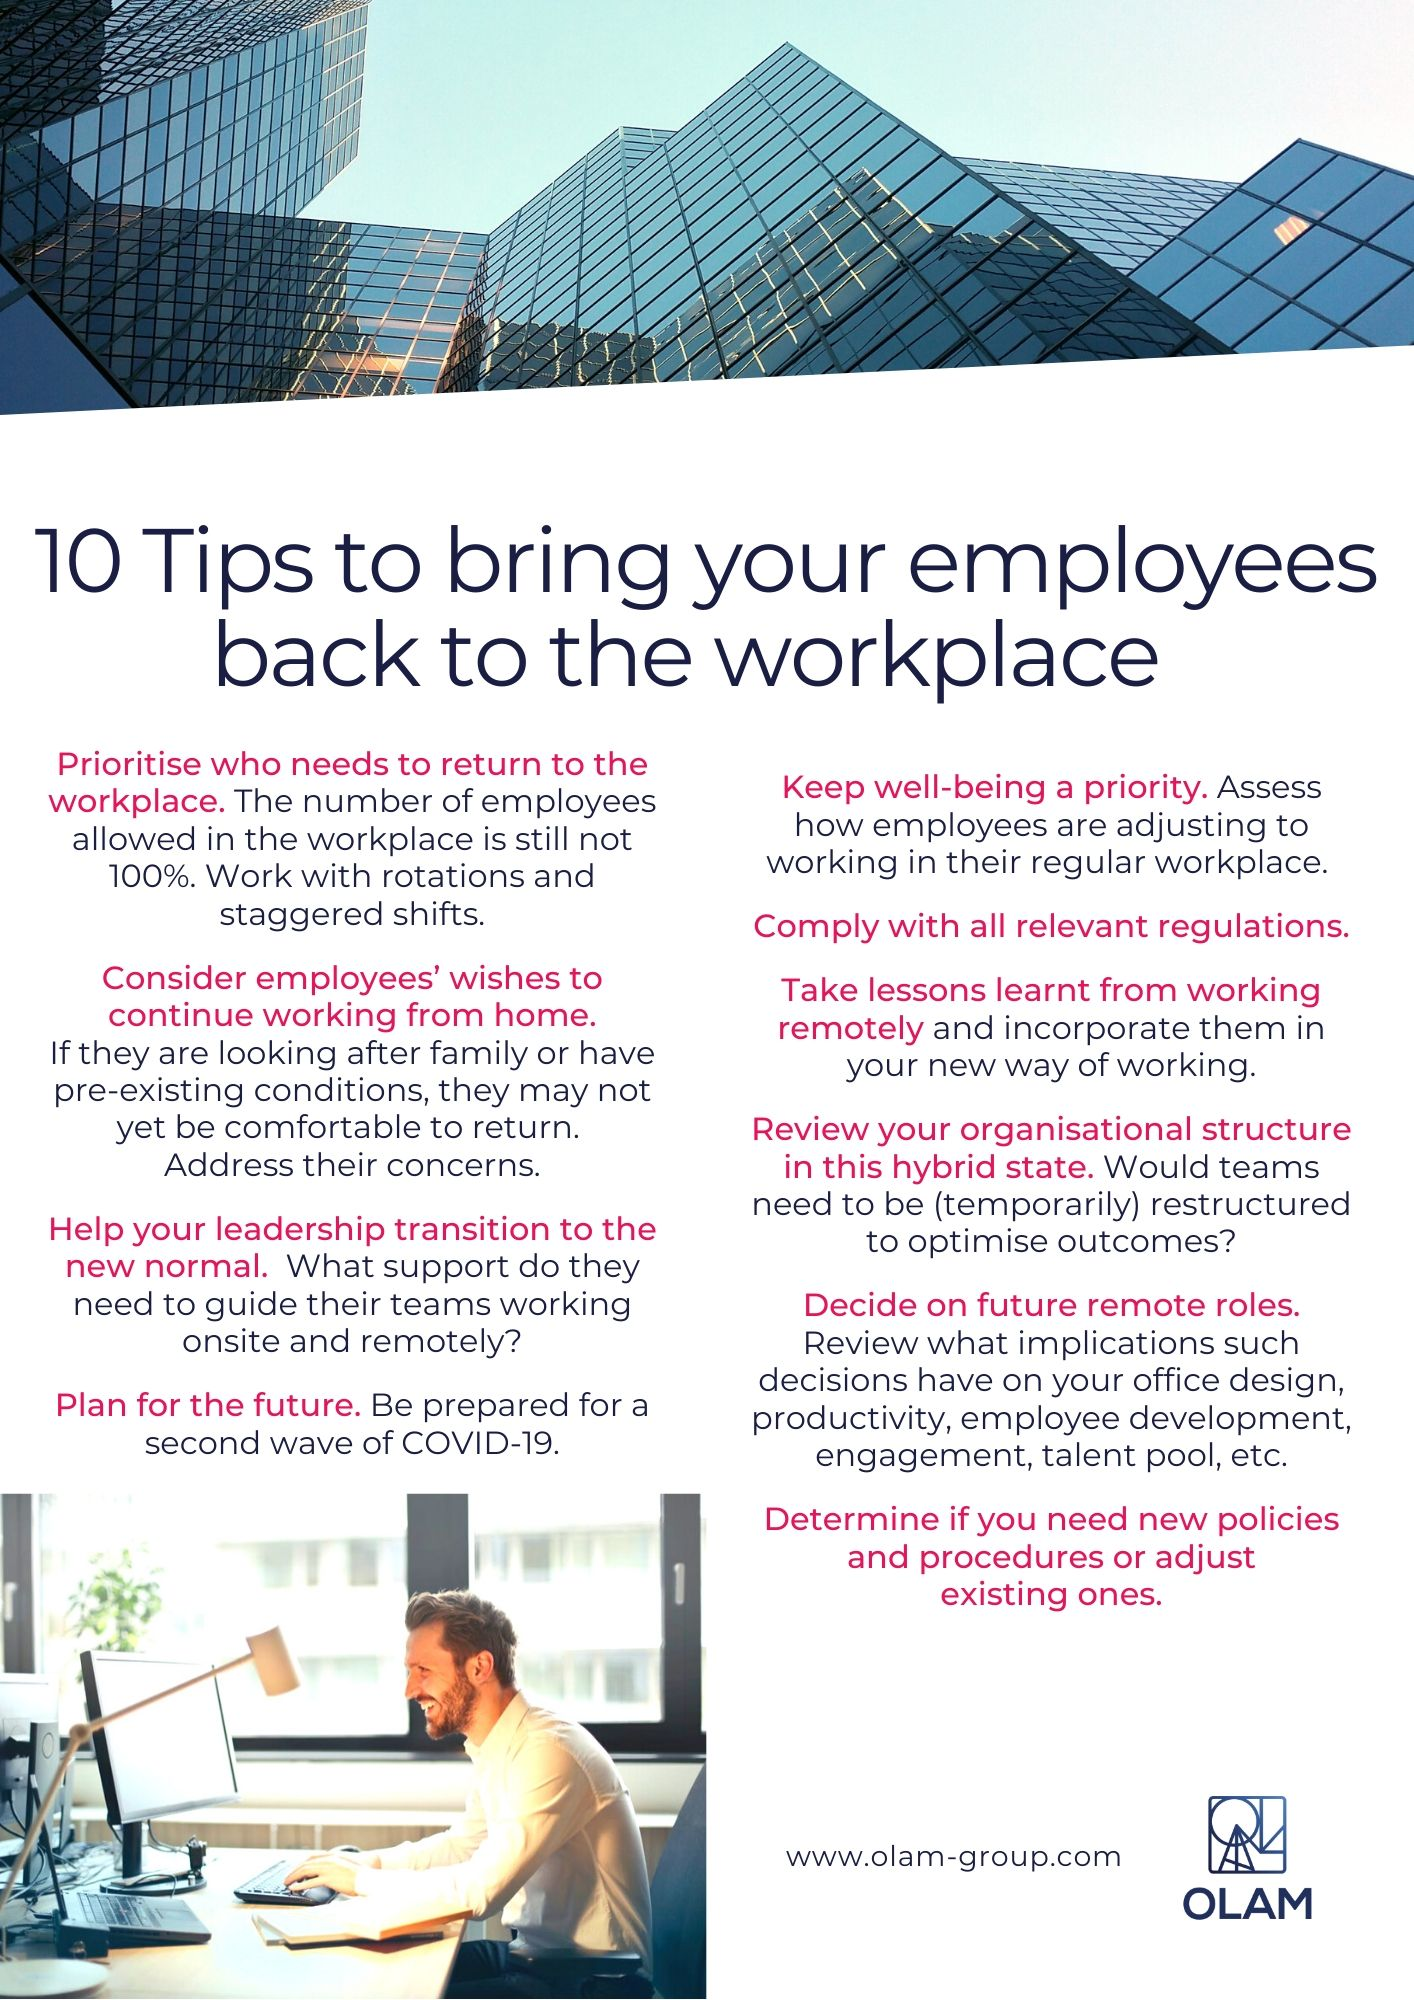 10 Tips Return to Workplace